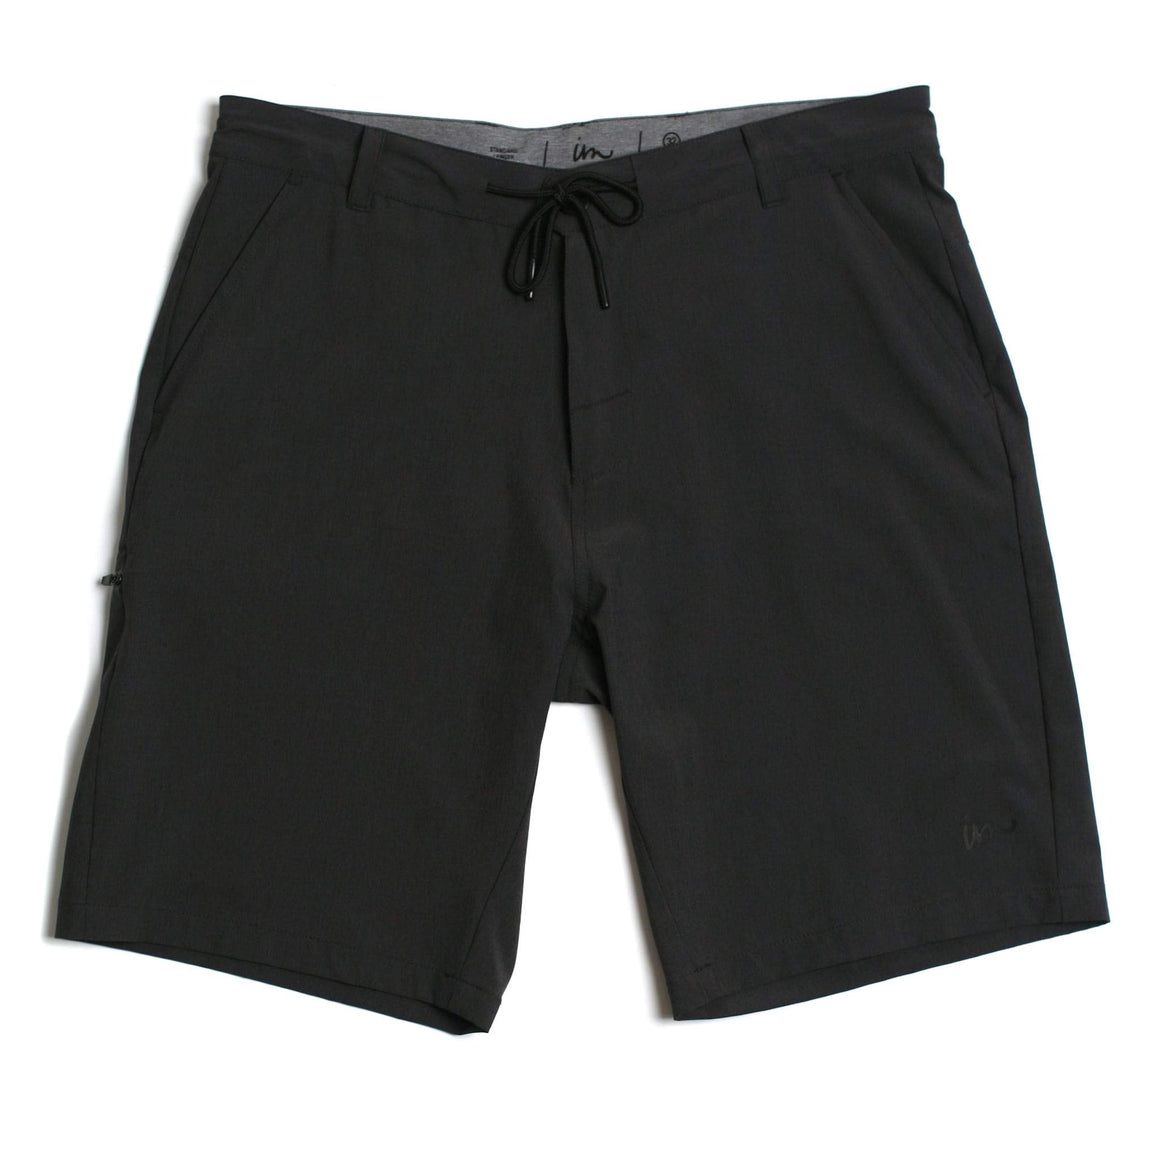 Imperial Motion Carbon Hybrid Walkshort - Double Black